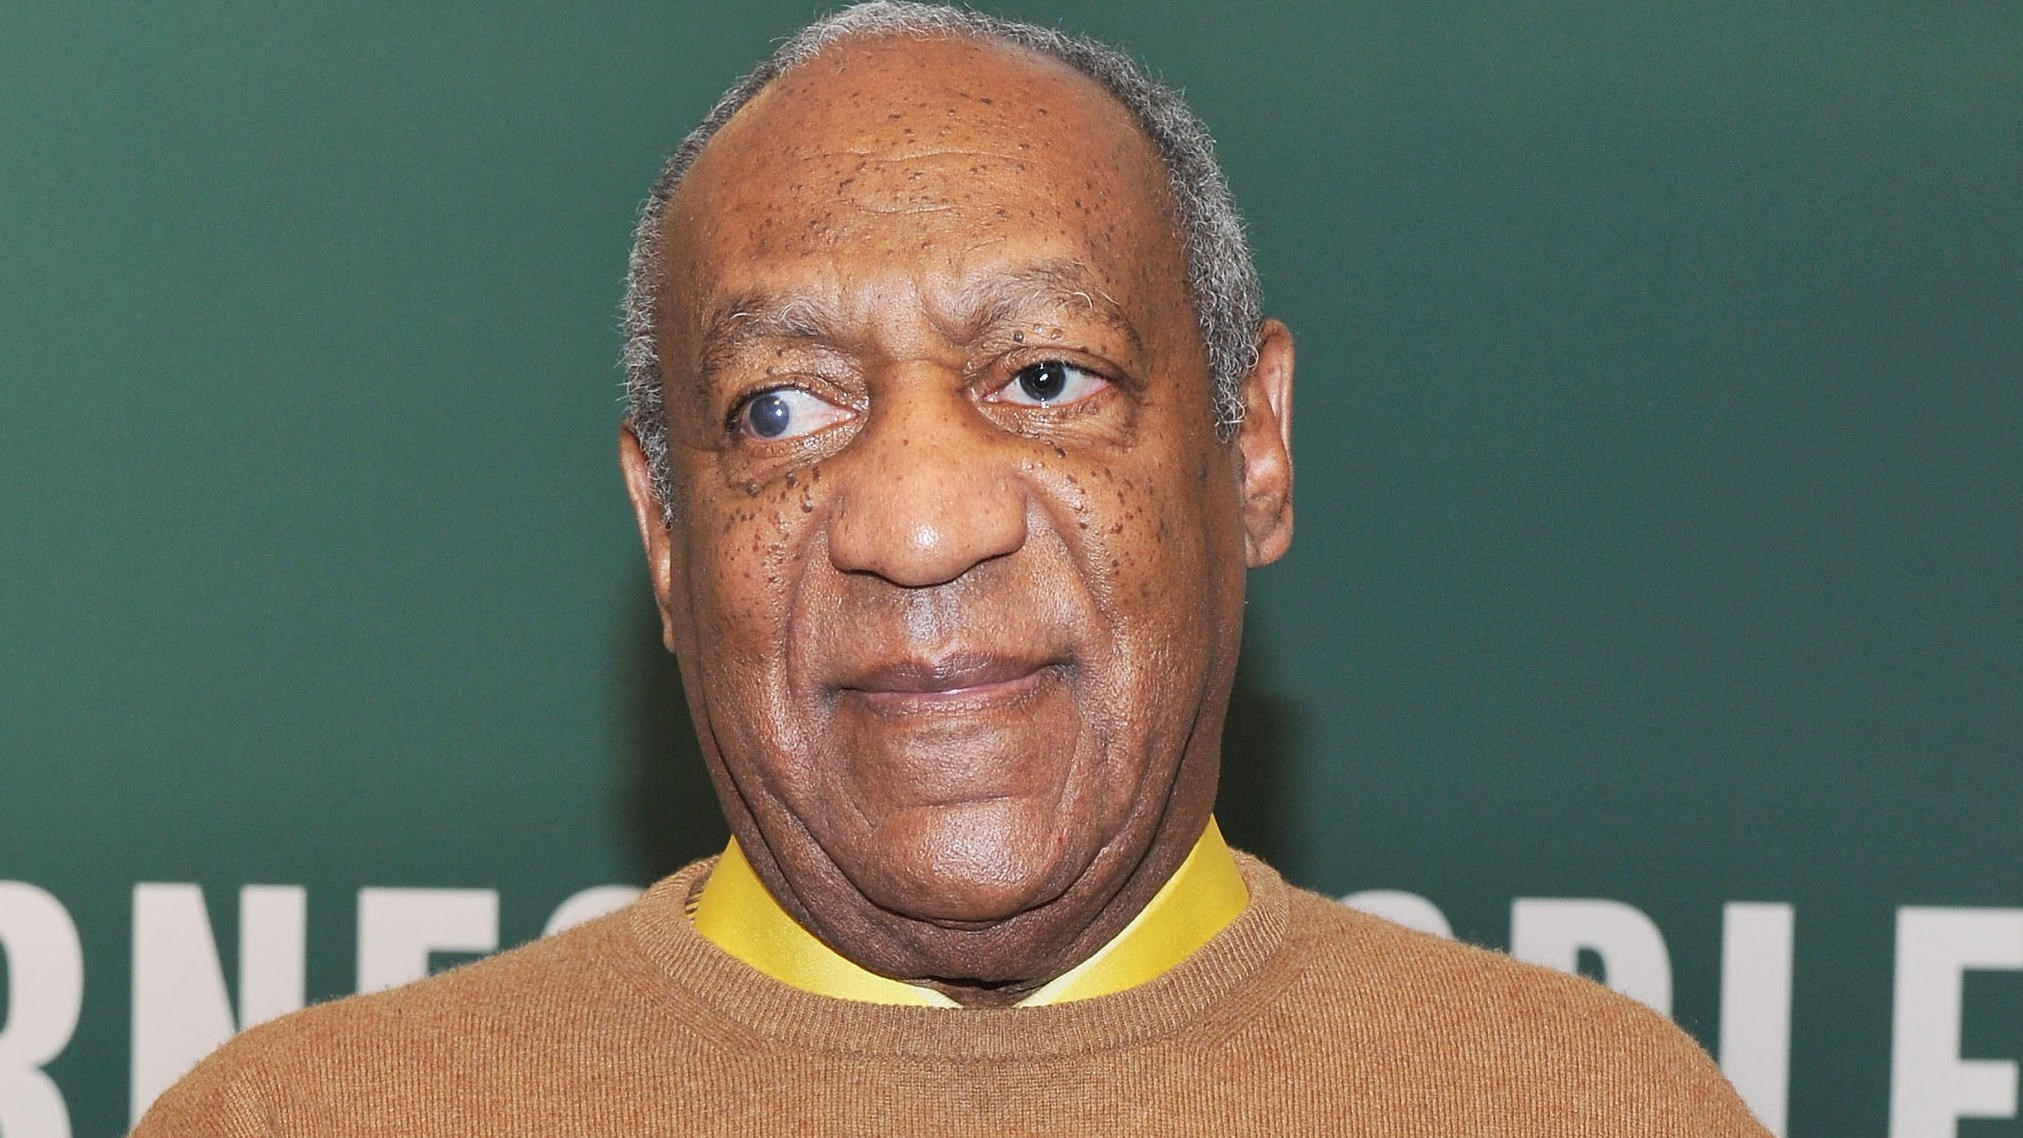 2023x1138 - Bill Cosby Wallpapers 16